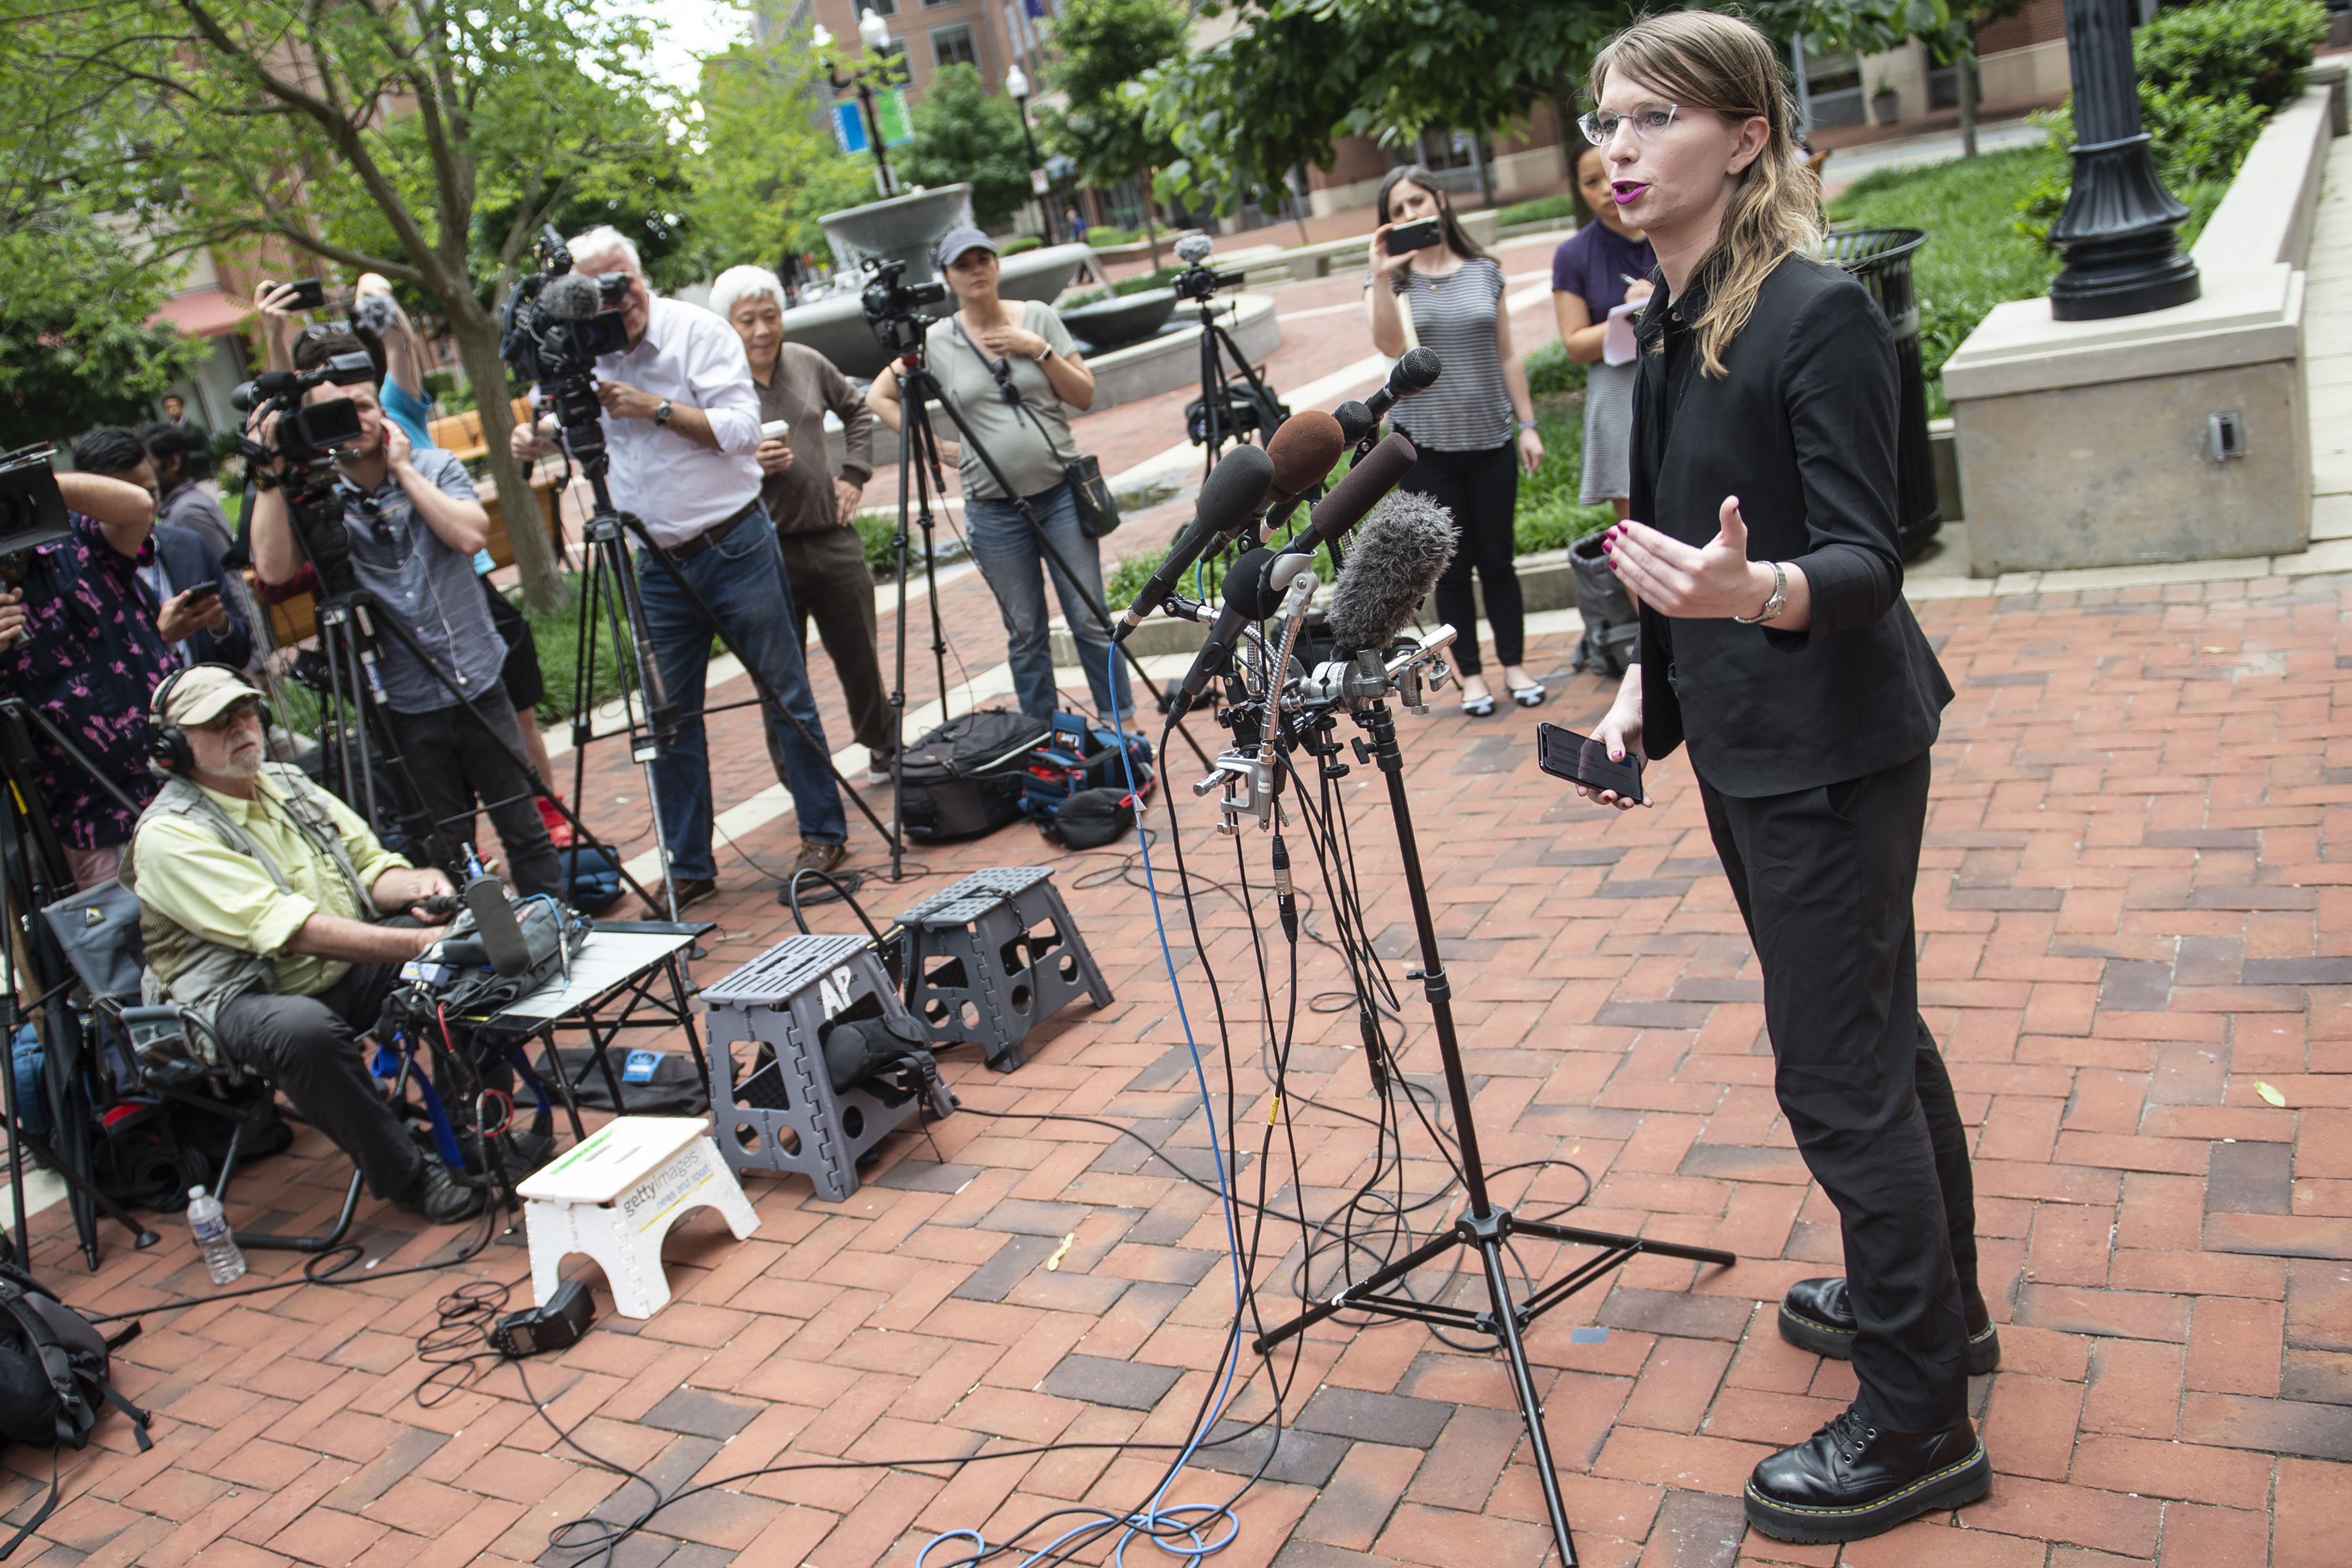 Former military intelligence analyst Chelsea Manning speaks to the press ahead of a Grand Jury appearance about WikiLeaks, in Alexandria, Virginia, on May 16, 2019. (Photo: Eric Baradat/AFP via Getty Images)